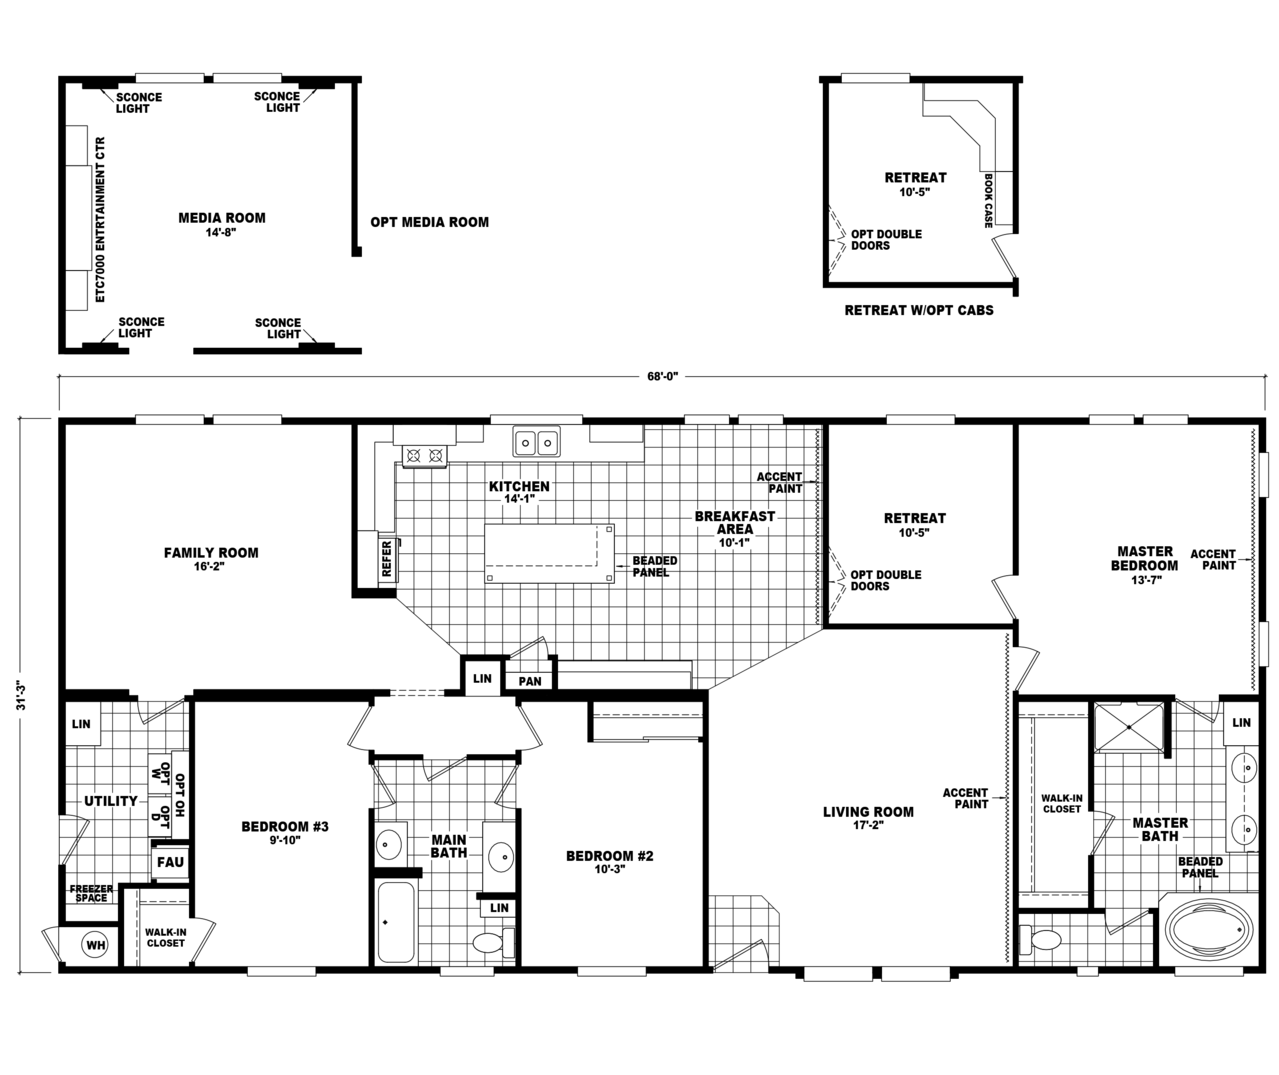 View the pecan valley iii floor plan for a 2125 sq ft palm for Standard house plans